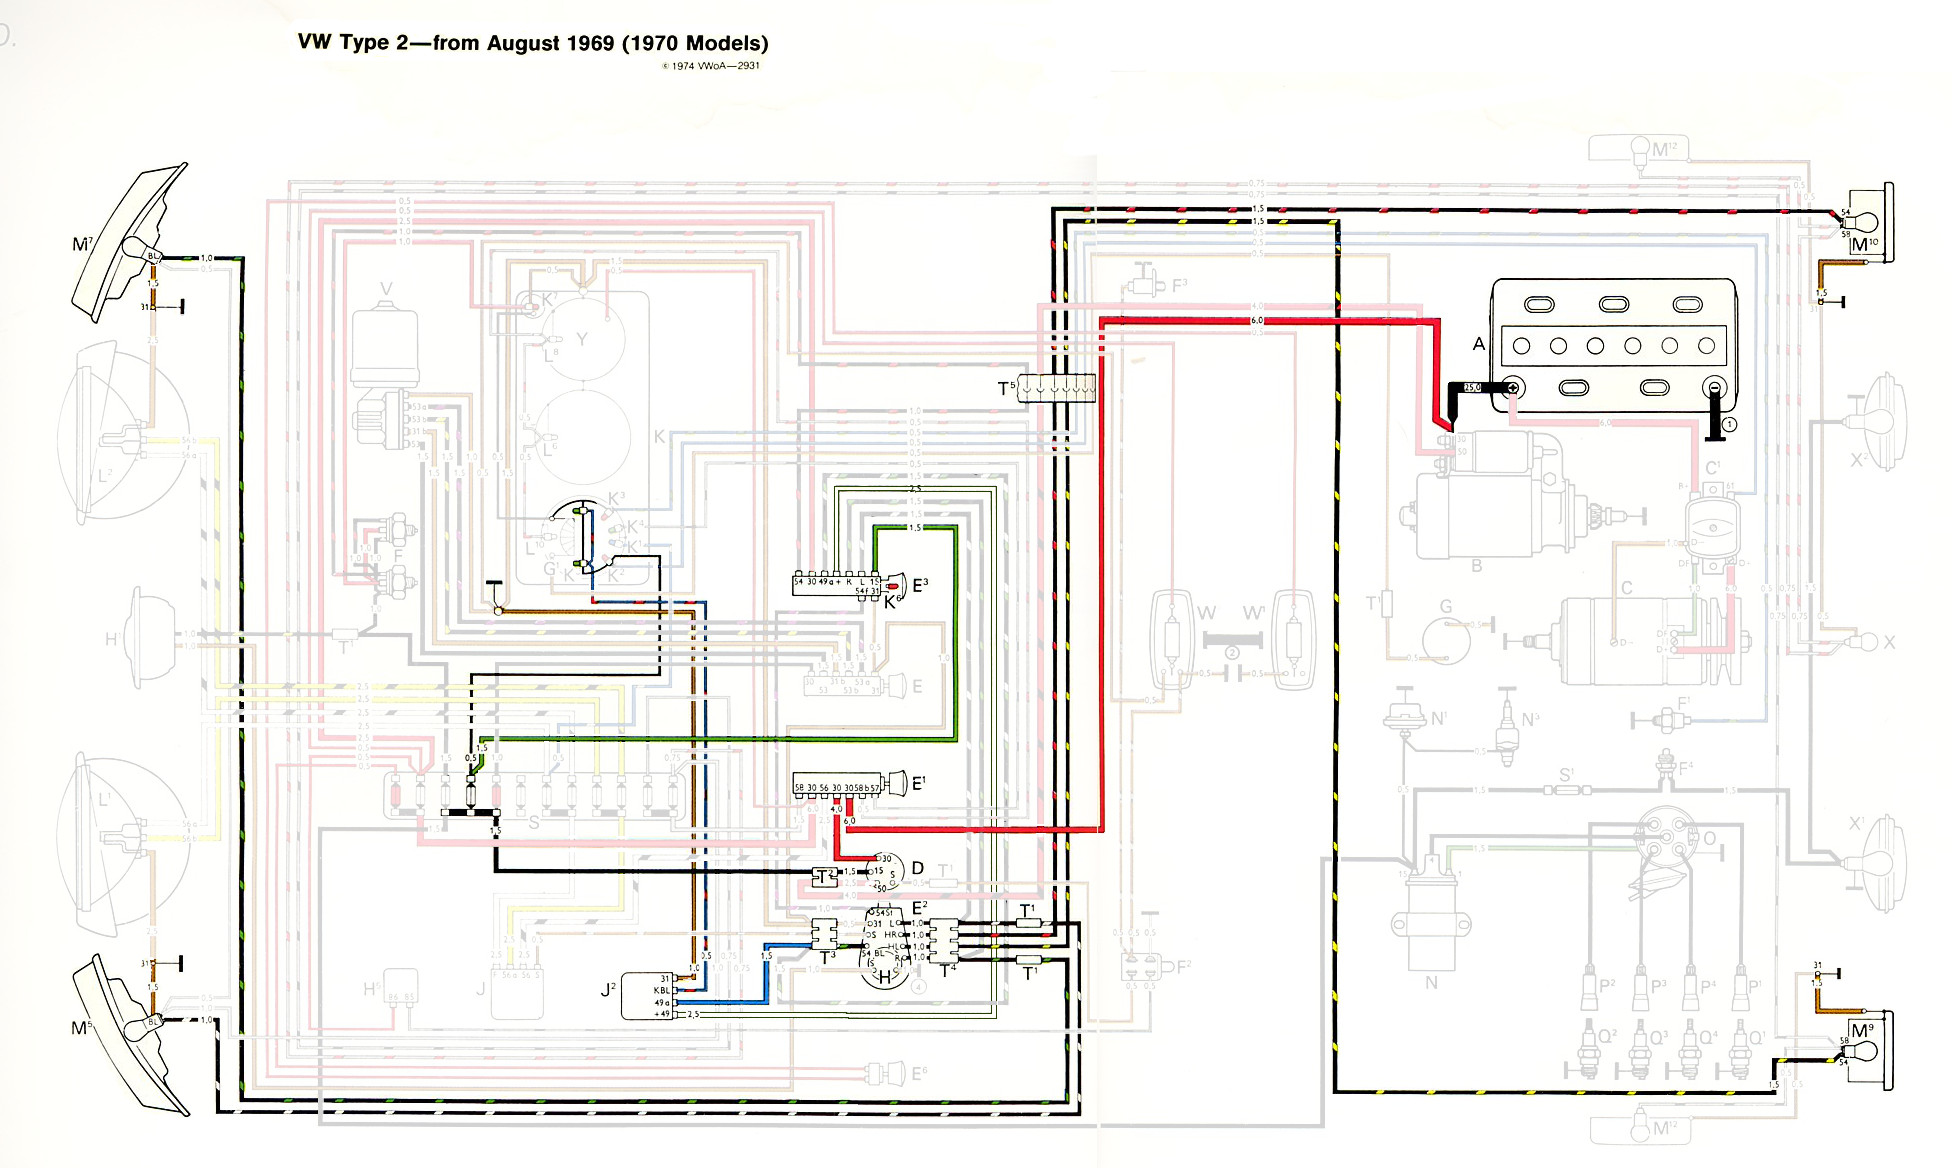 1970bus_signals thesamba com type 2 wiring diagrams 1970 vw beetle wiring schematic at n-0.co